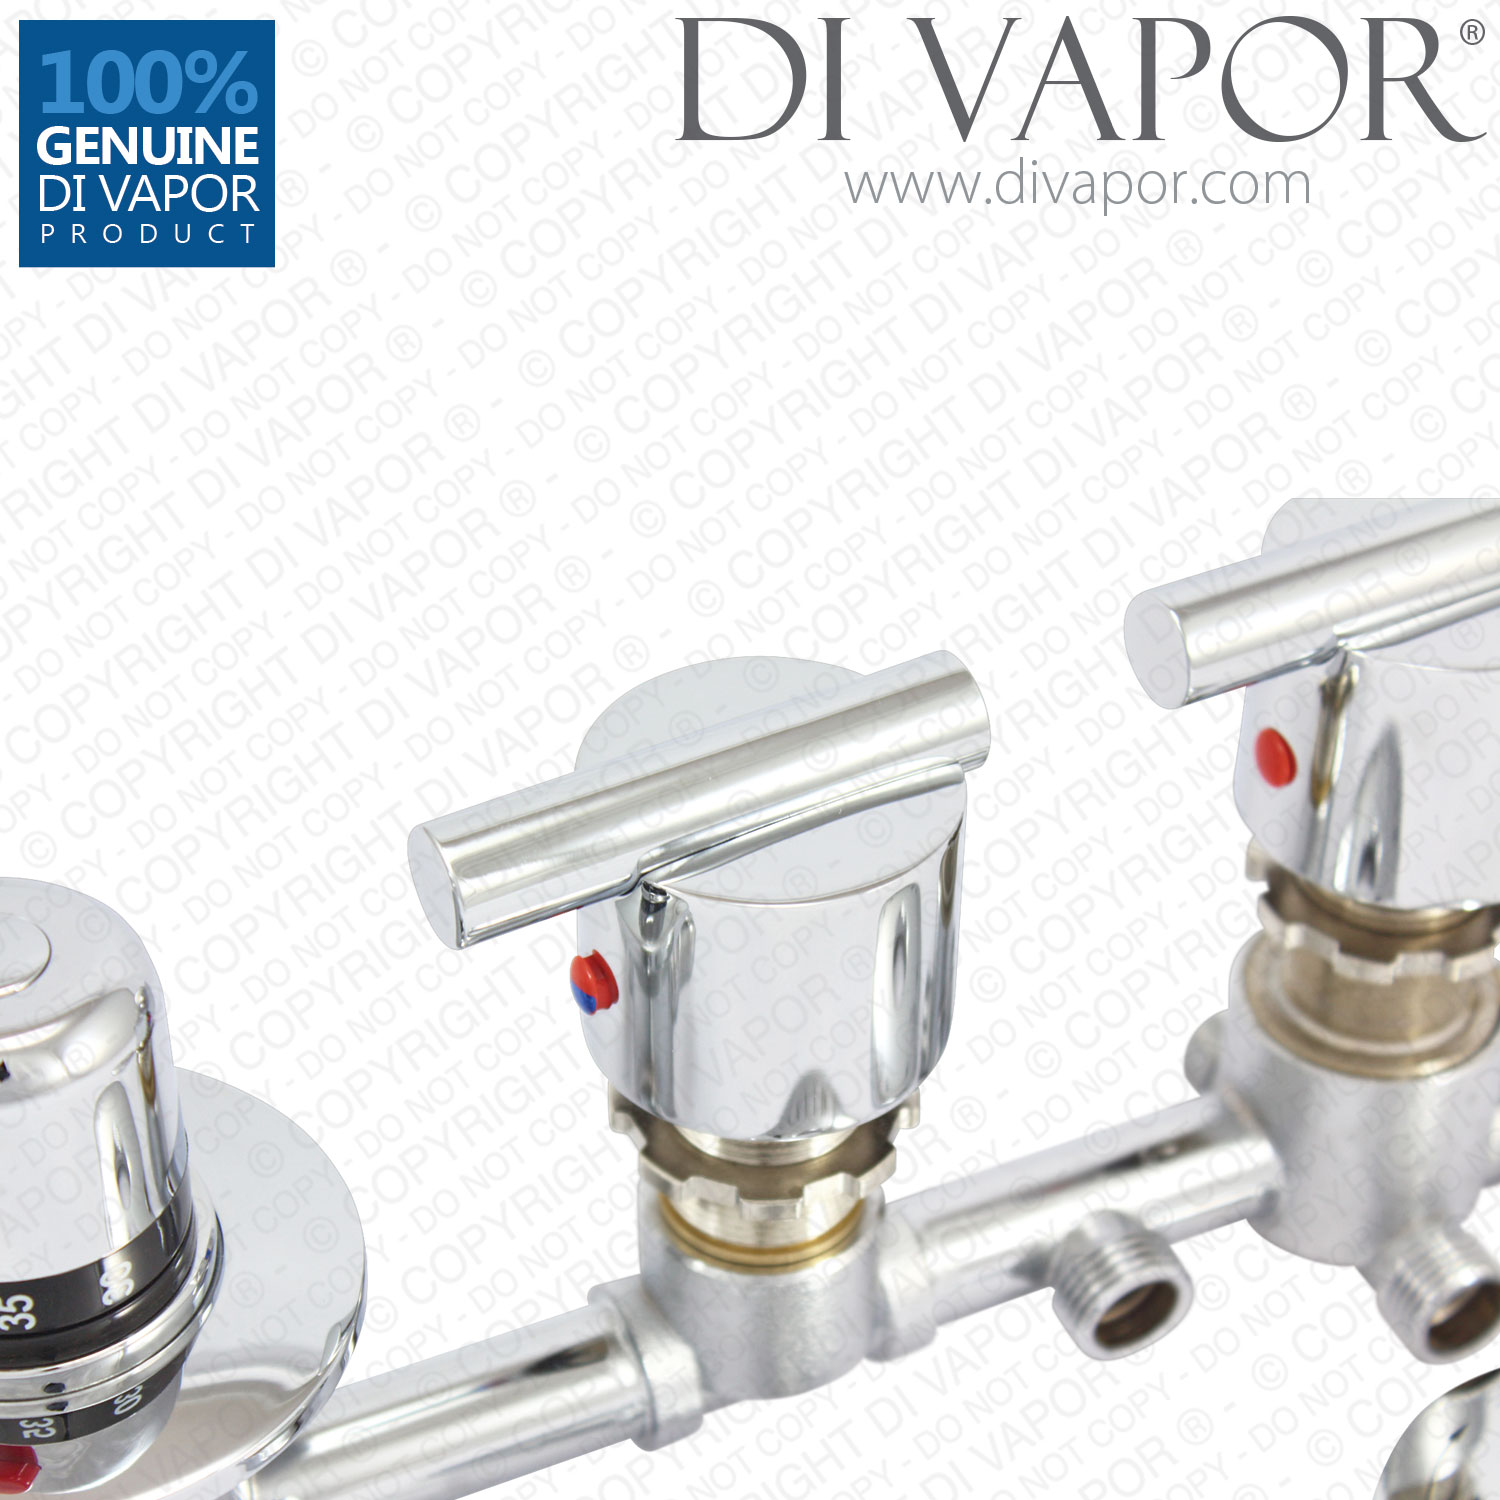 3 Way Shower Diverter Mixer Tap With Thermostatic Valve